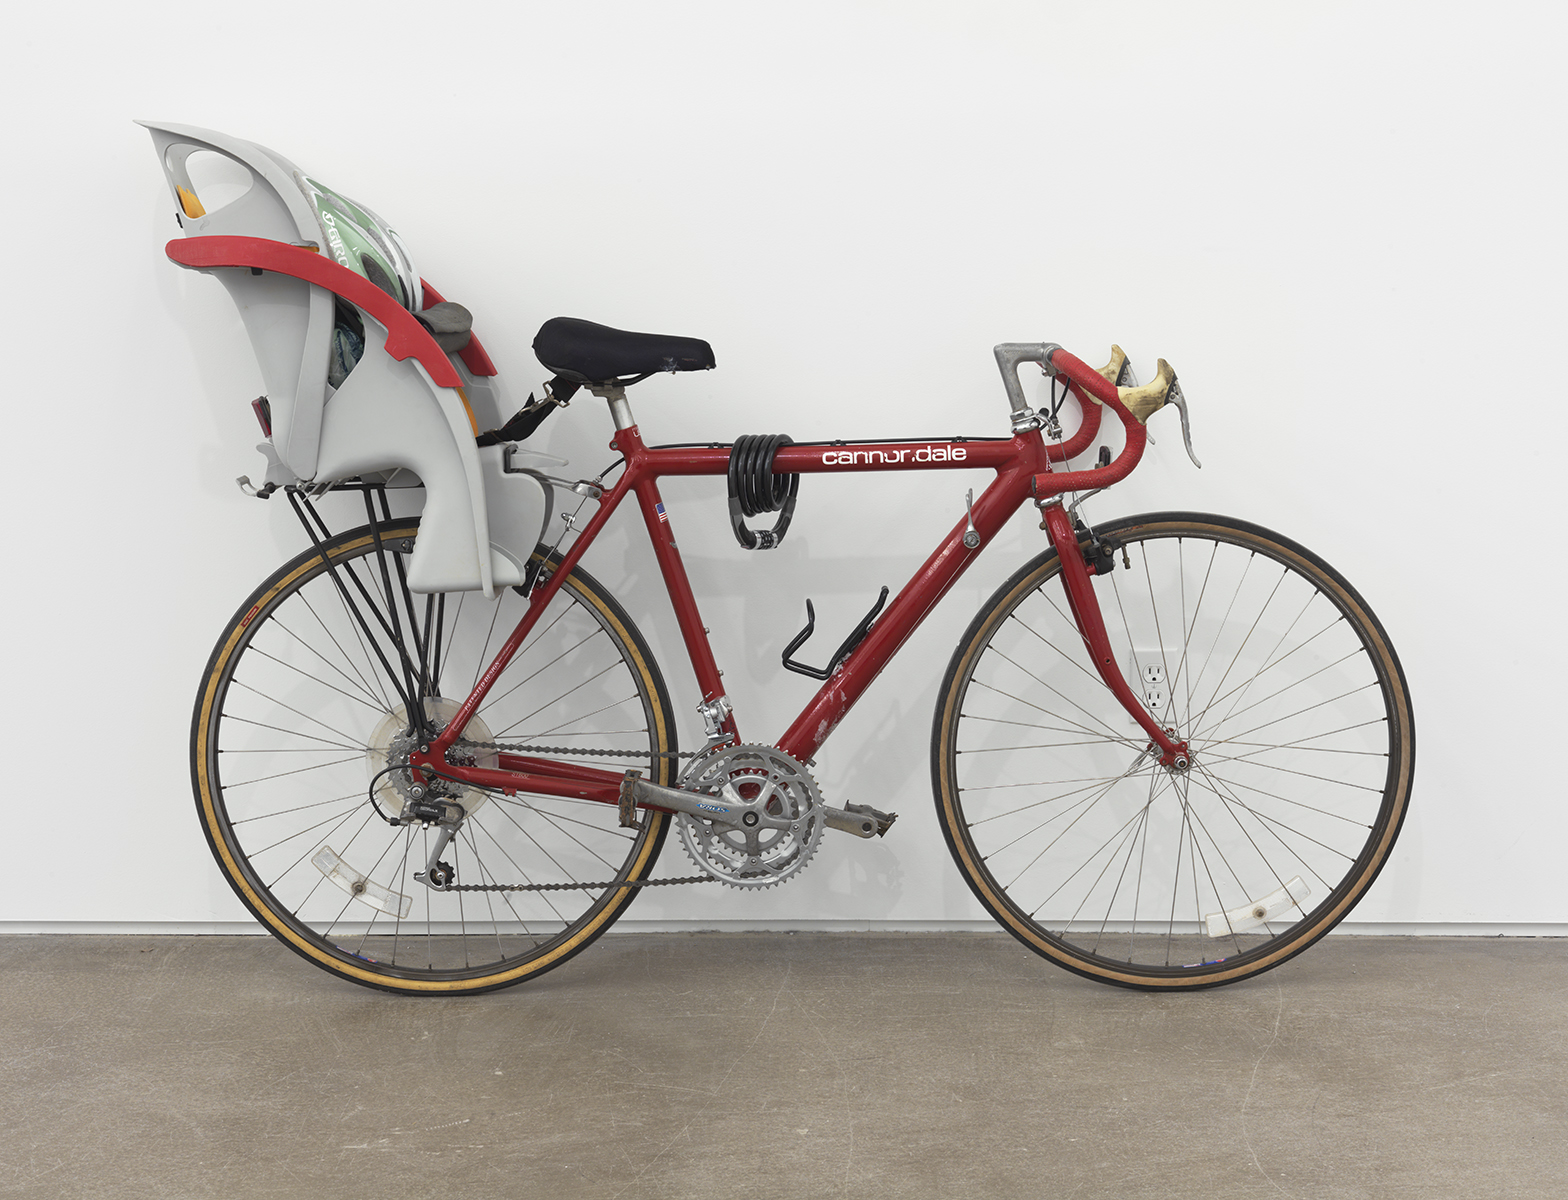 Darren Bader Gallerist's 2013 Gallerist's bicycle ridden to gallery daily Dimensions variable